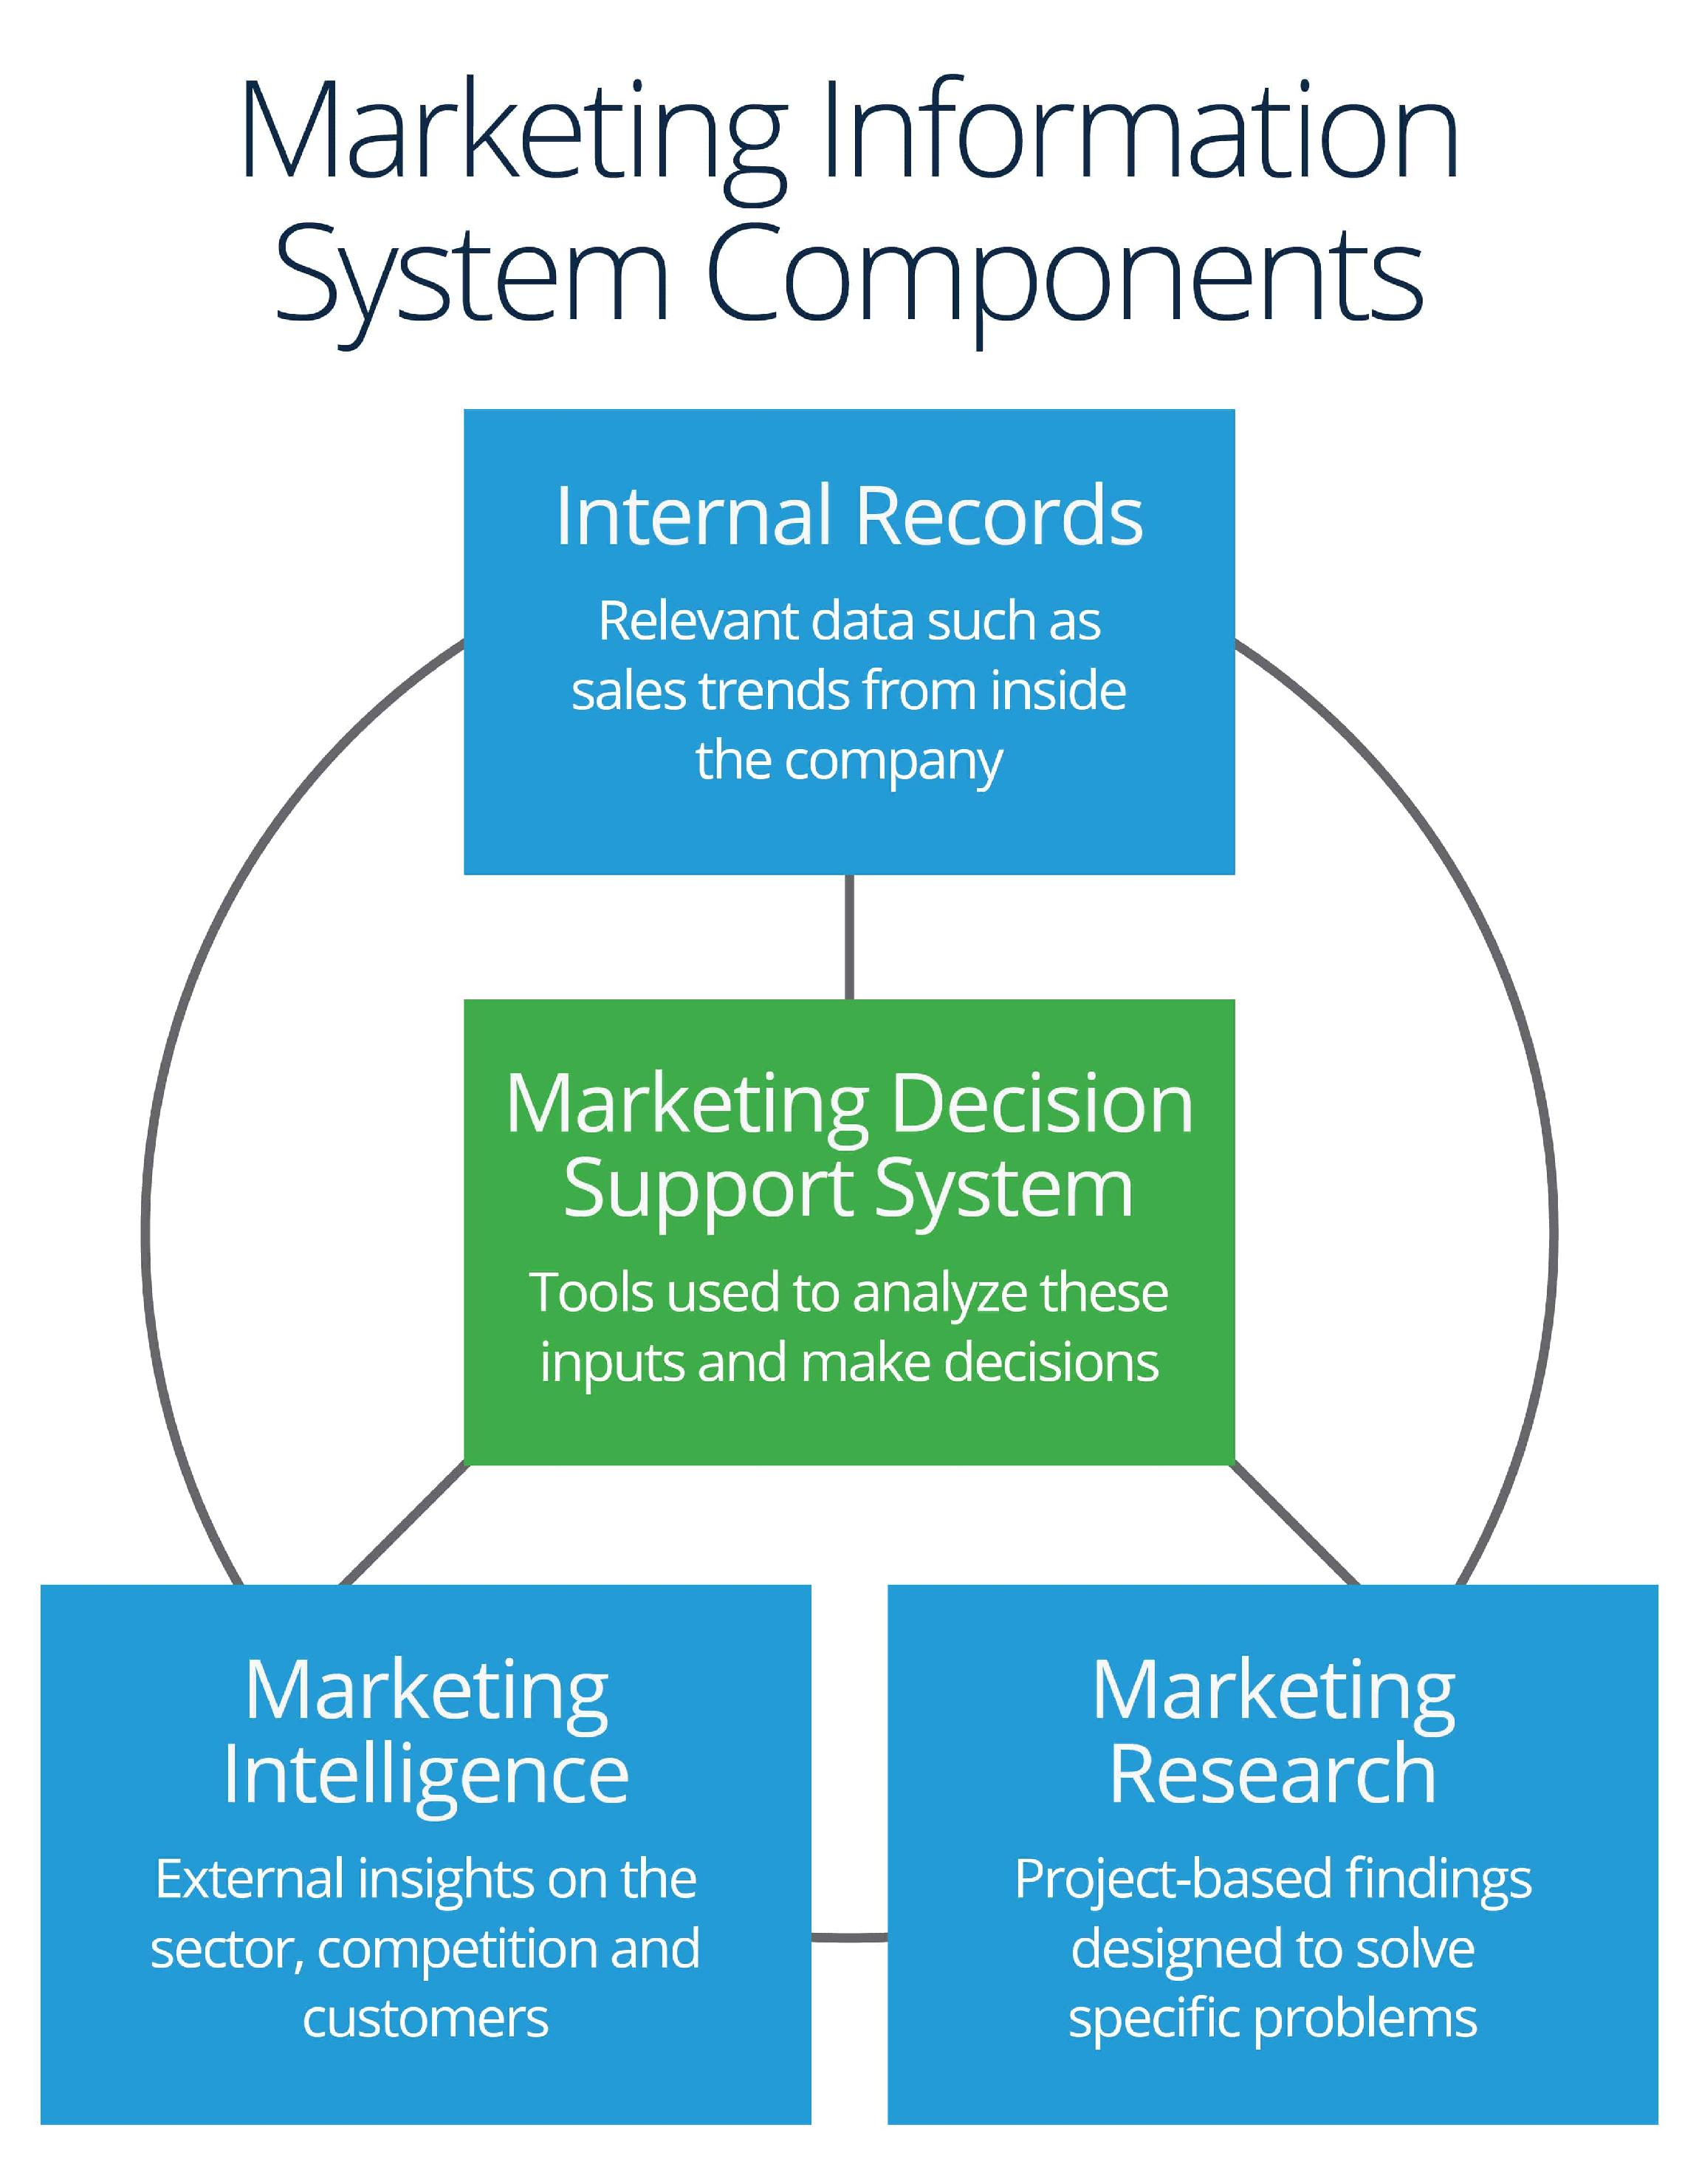 Marketing Information Components